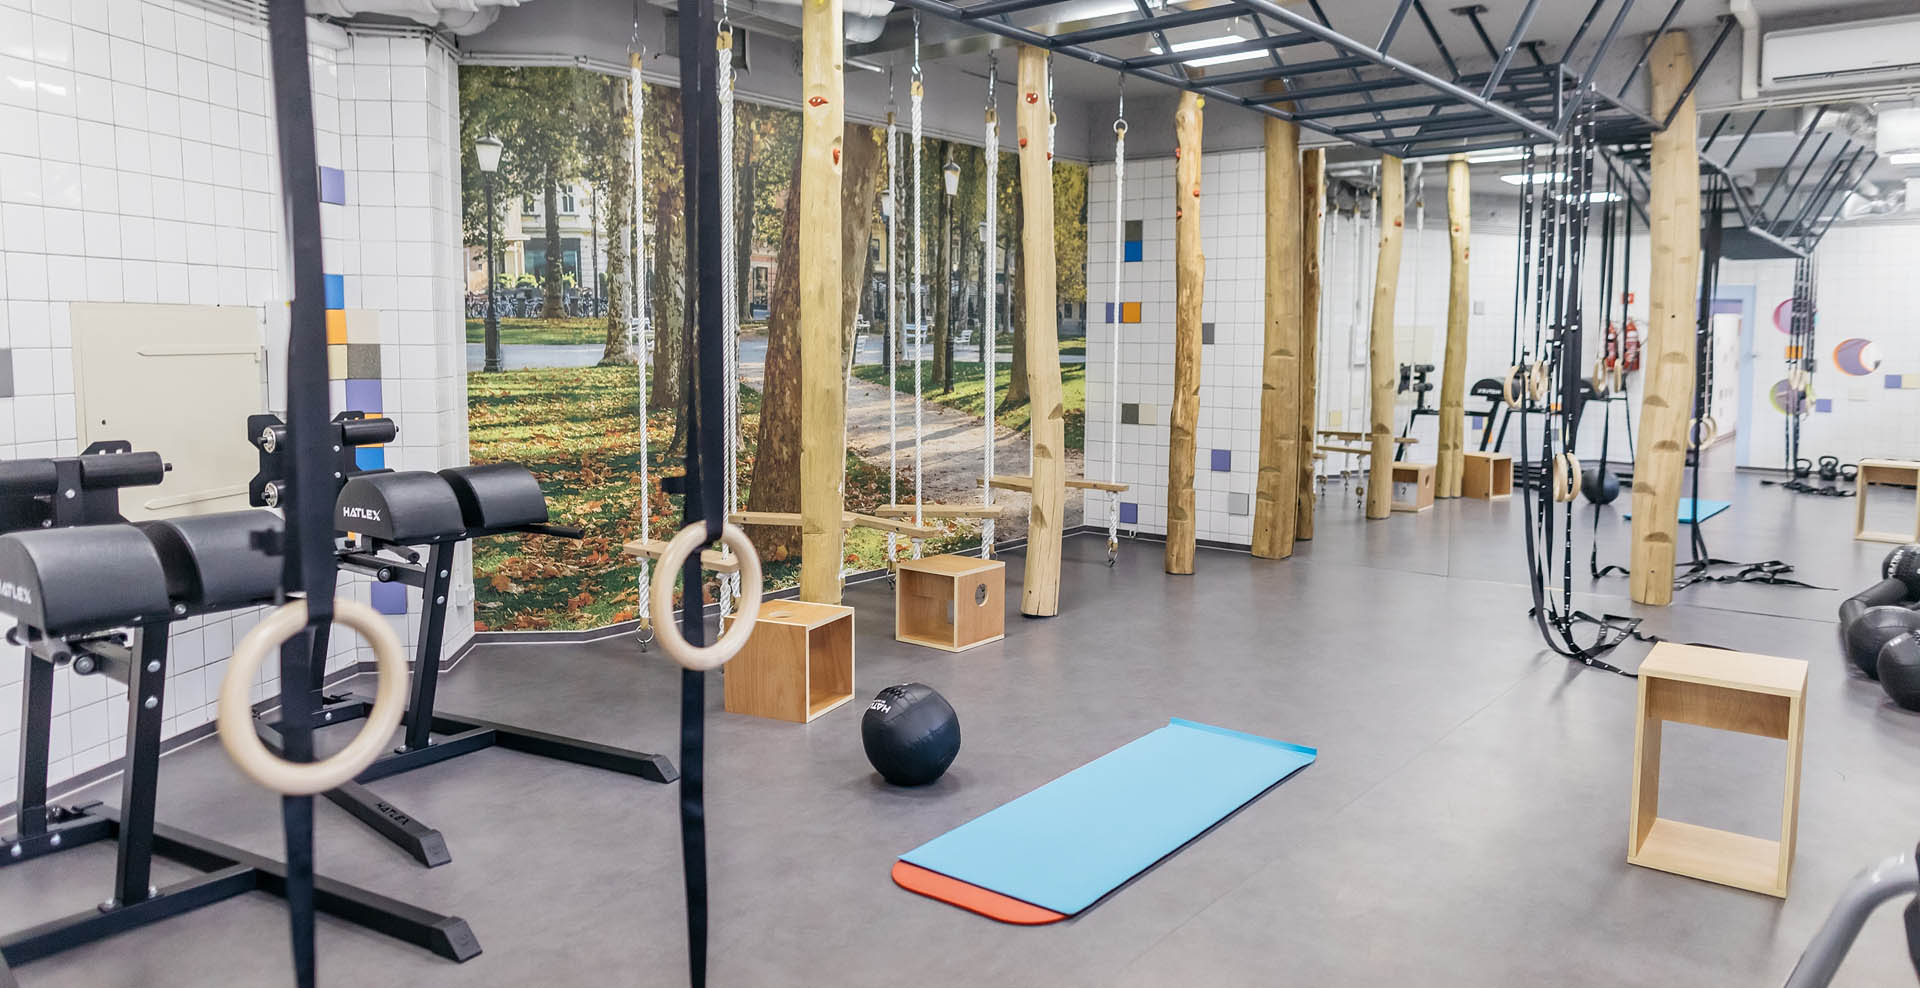 Gym at Grand Hotel Union in Ljubljana